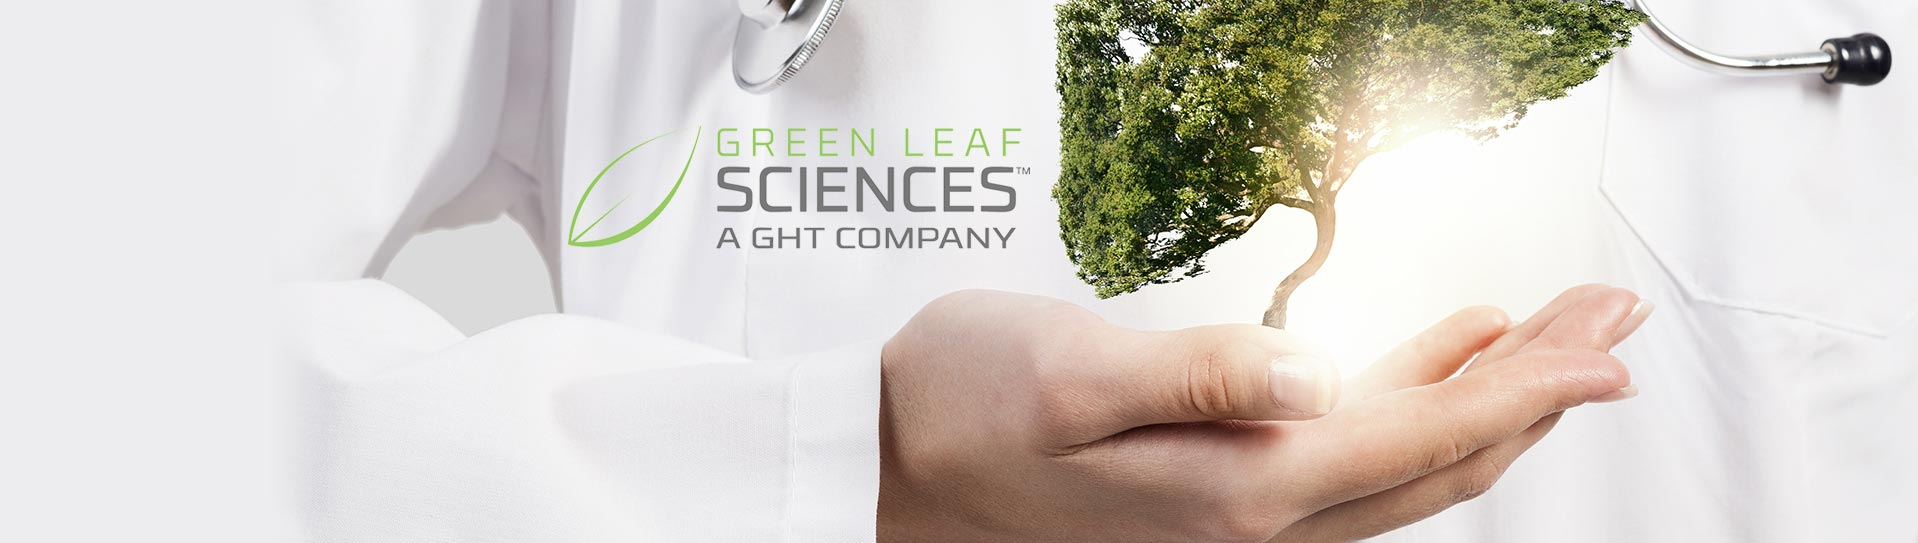 Green Leaf Sciences a GHT company